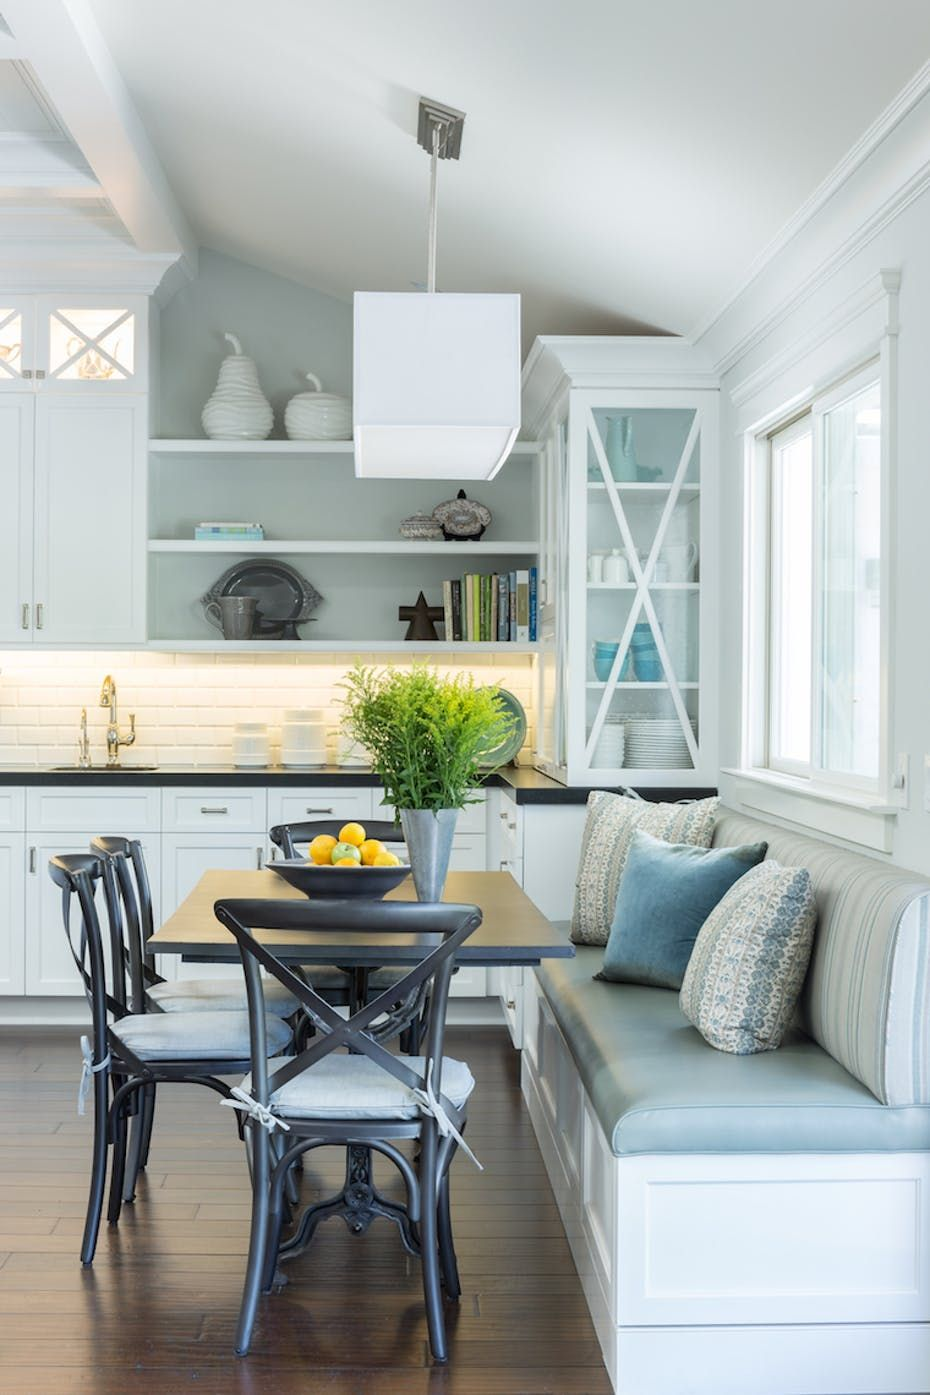 Custom banquette seating in kitchen | Kitchens & Pantries (with ...